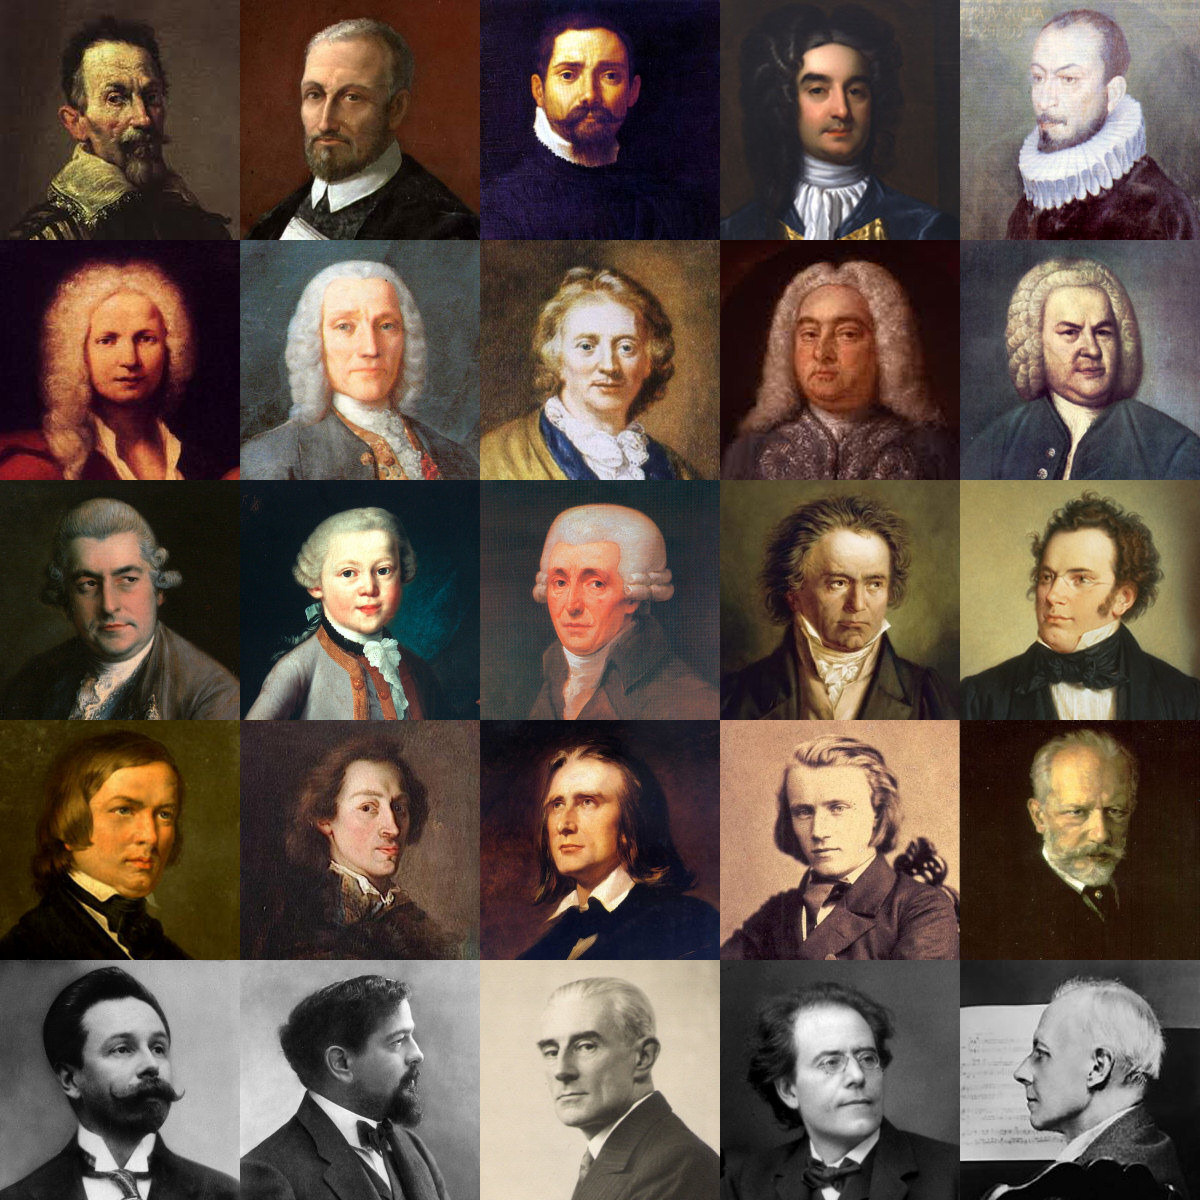 Most famous classical composers